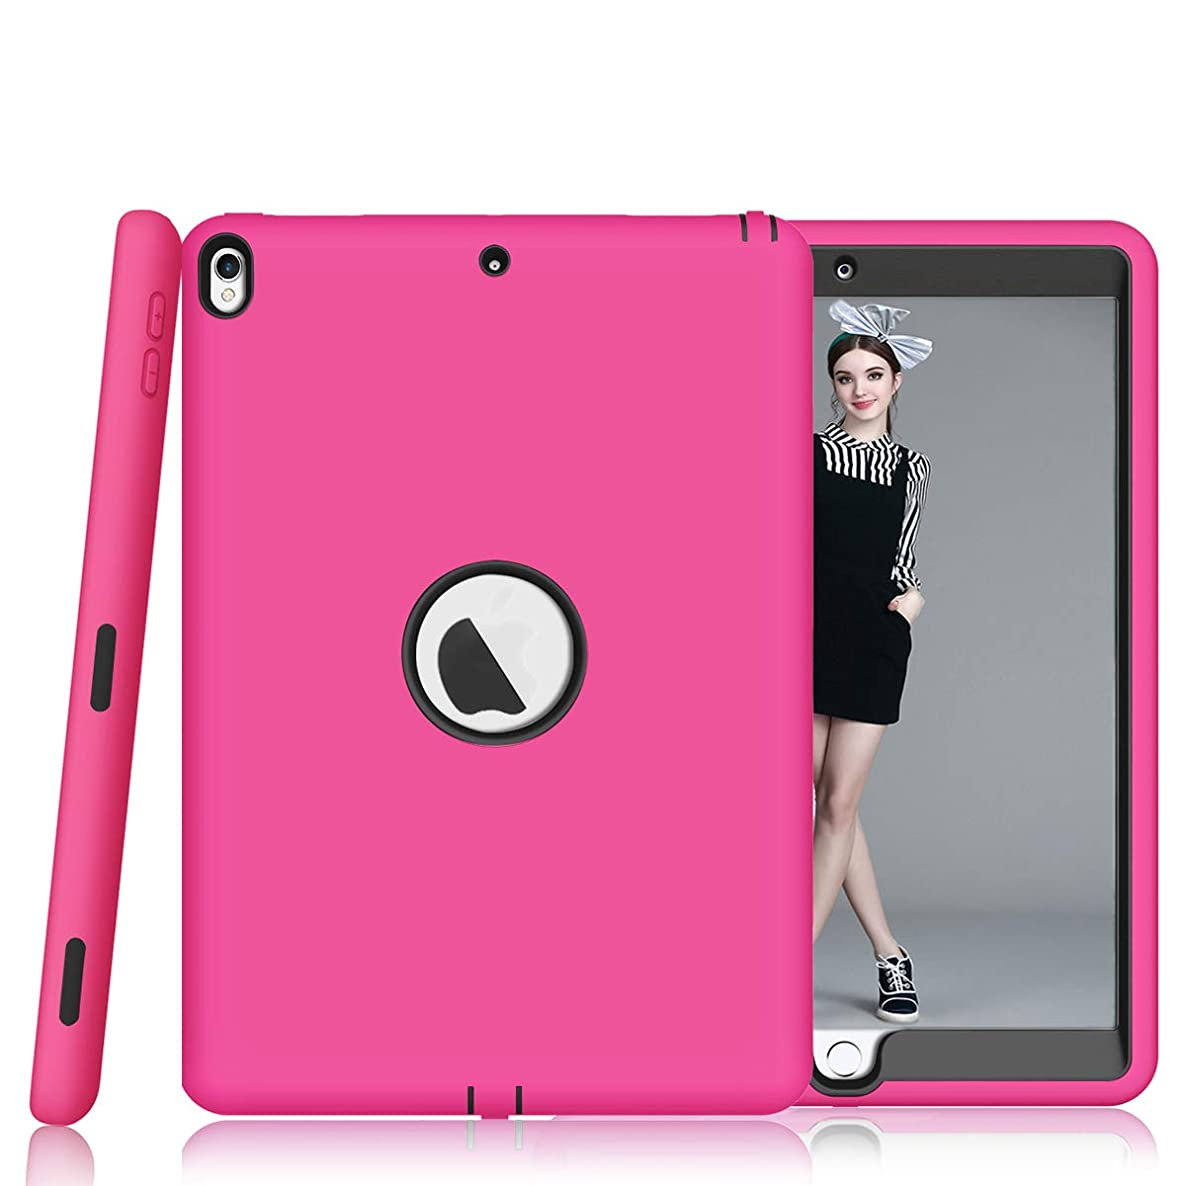 Sevrok iPad Air 3 Case - Heavy Duty Shockproof Defender Hard PC+Silicone Hybrid Protective Armor Cover for Apple iPad 3rd Generation 10.5 inch, Rose Red